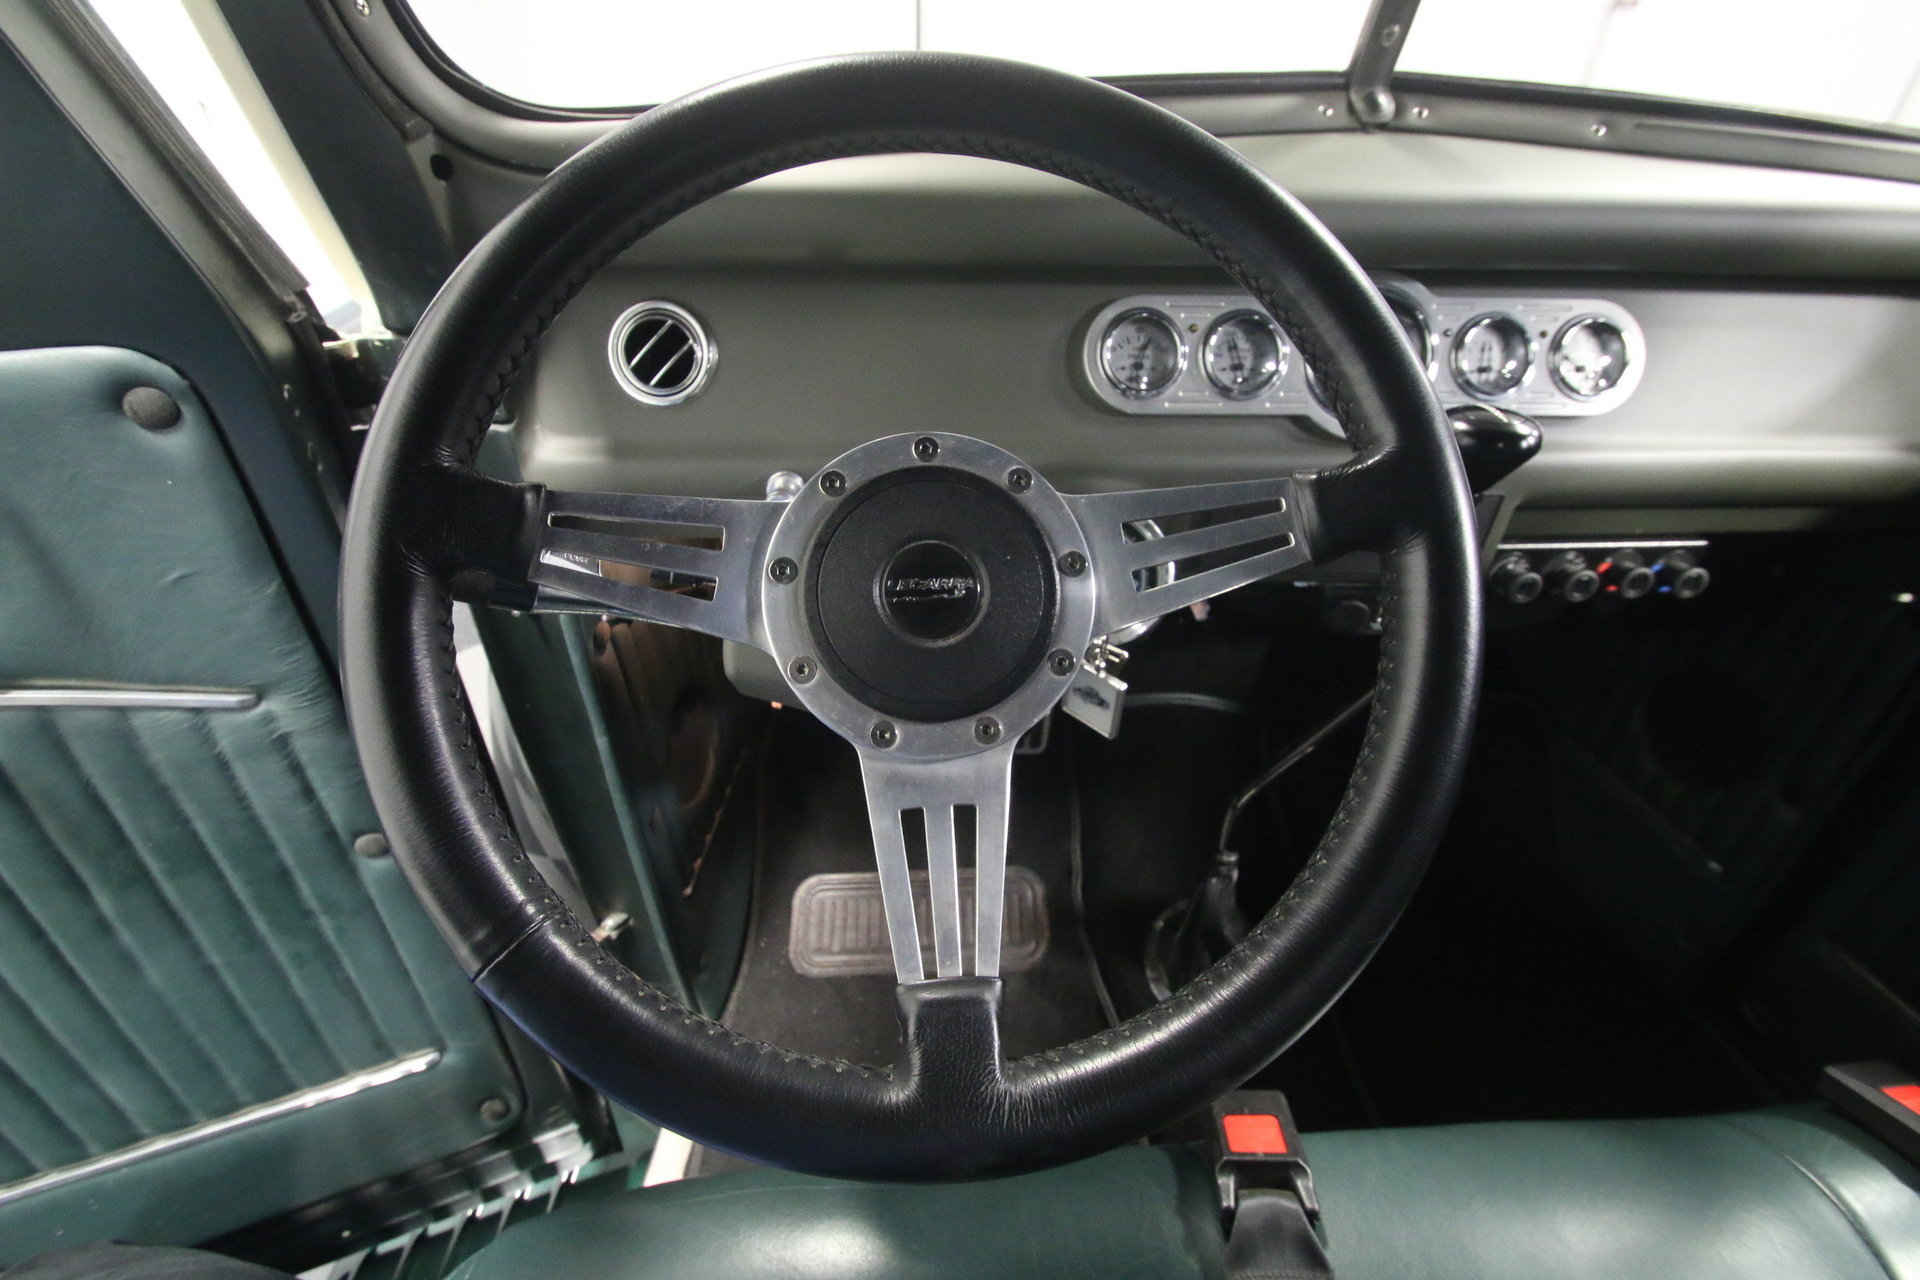 1940 Ford Truck Streetside Classics The Nations Trusted Classic 1941 Steering Column View 360